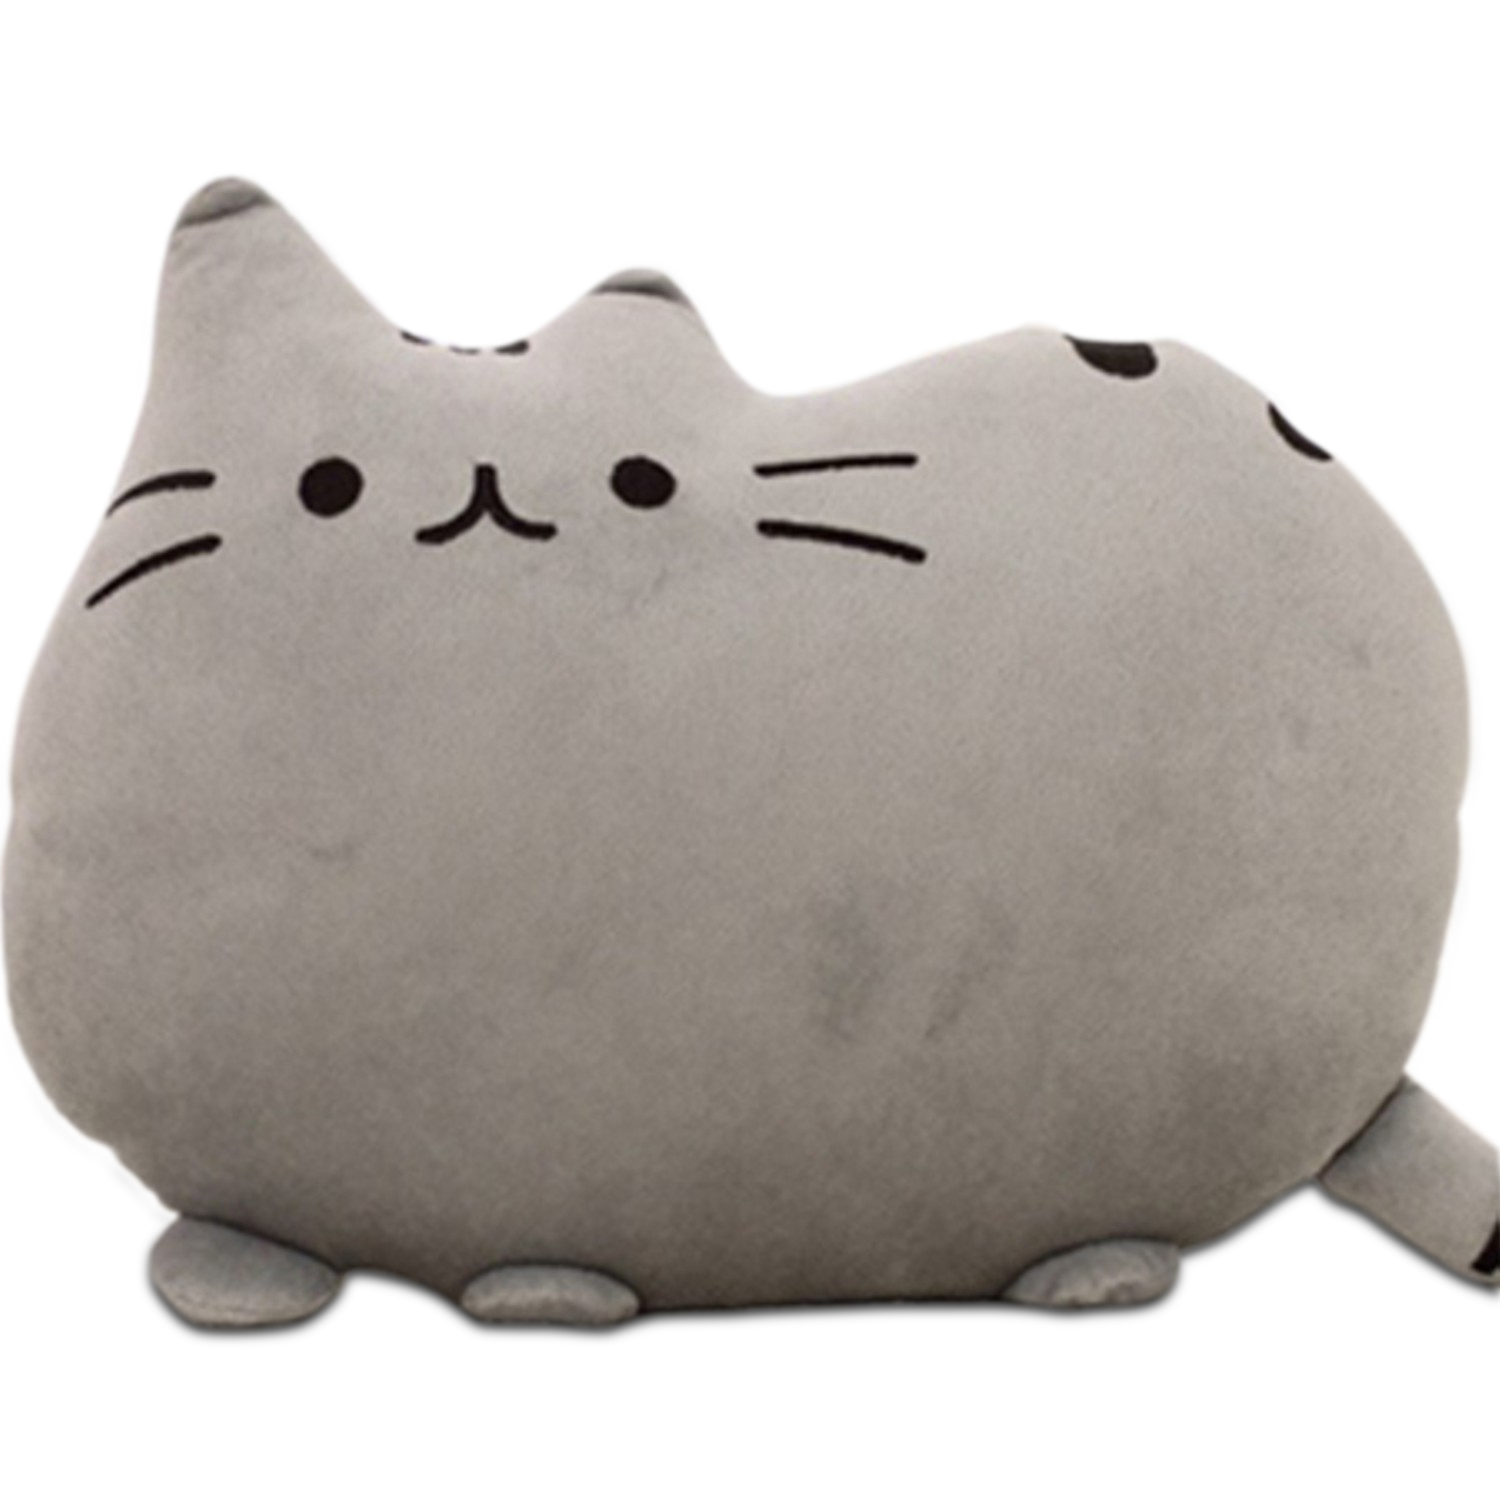 Coussin-chat.jpg